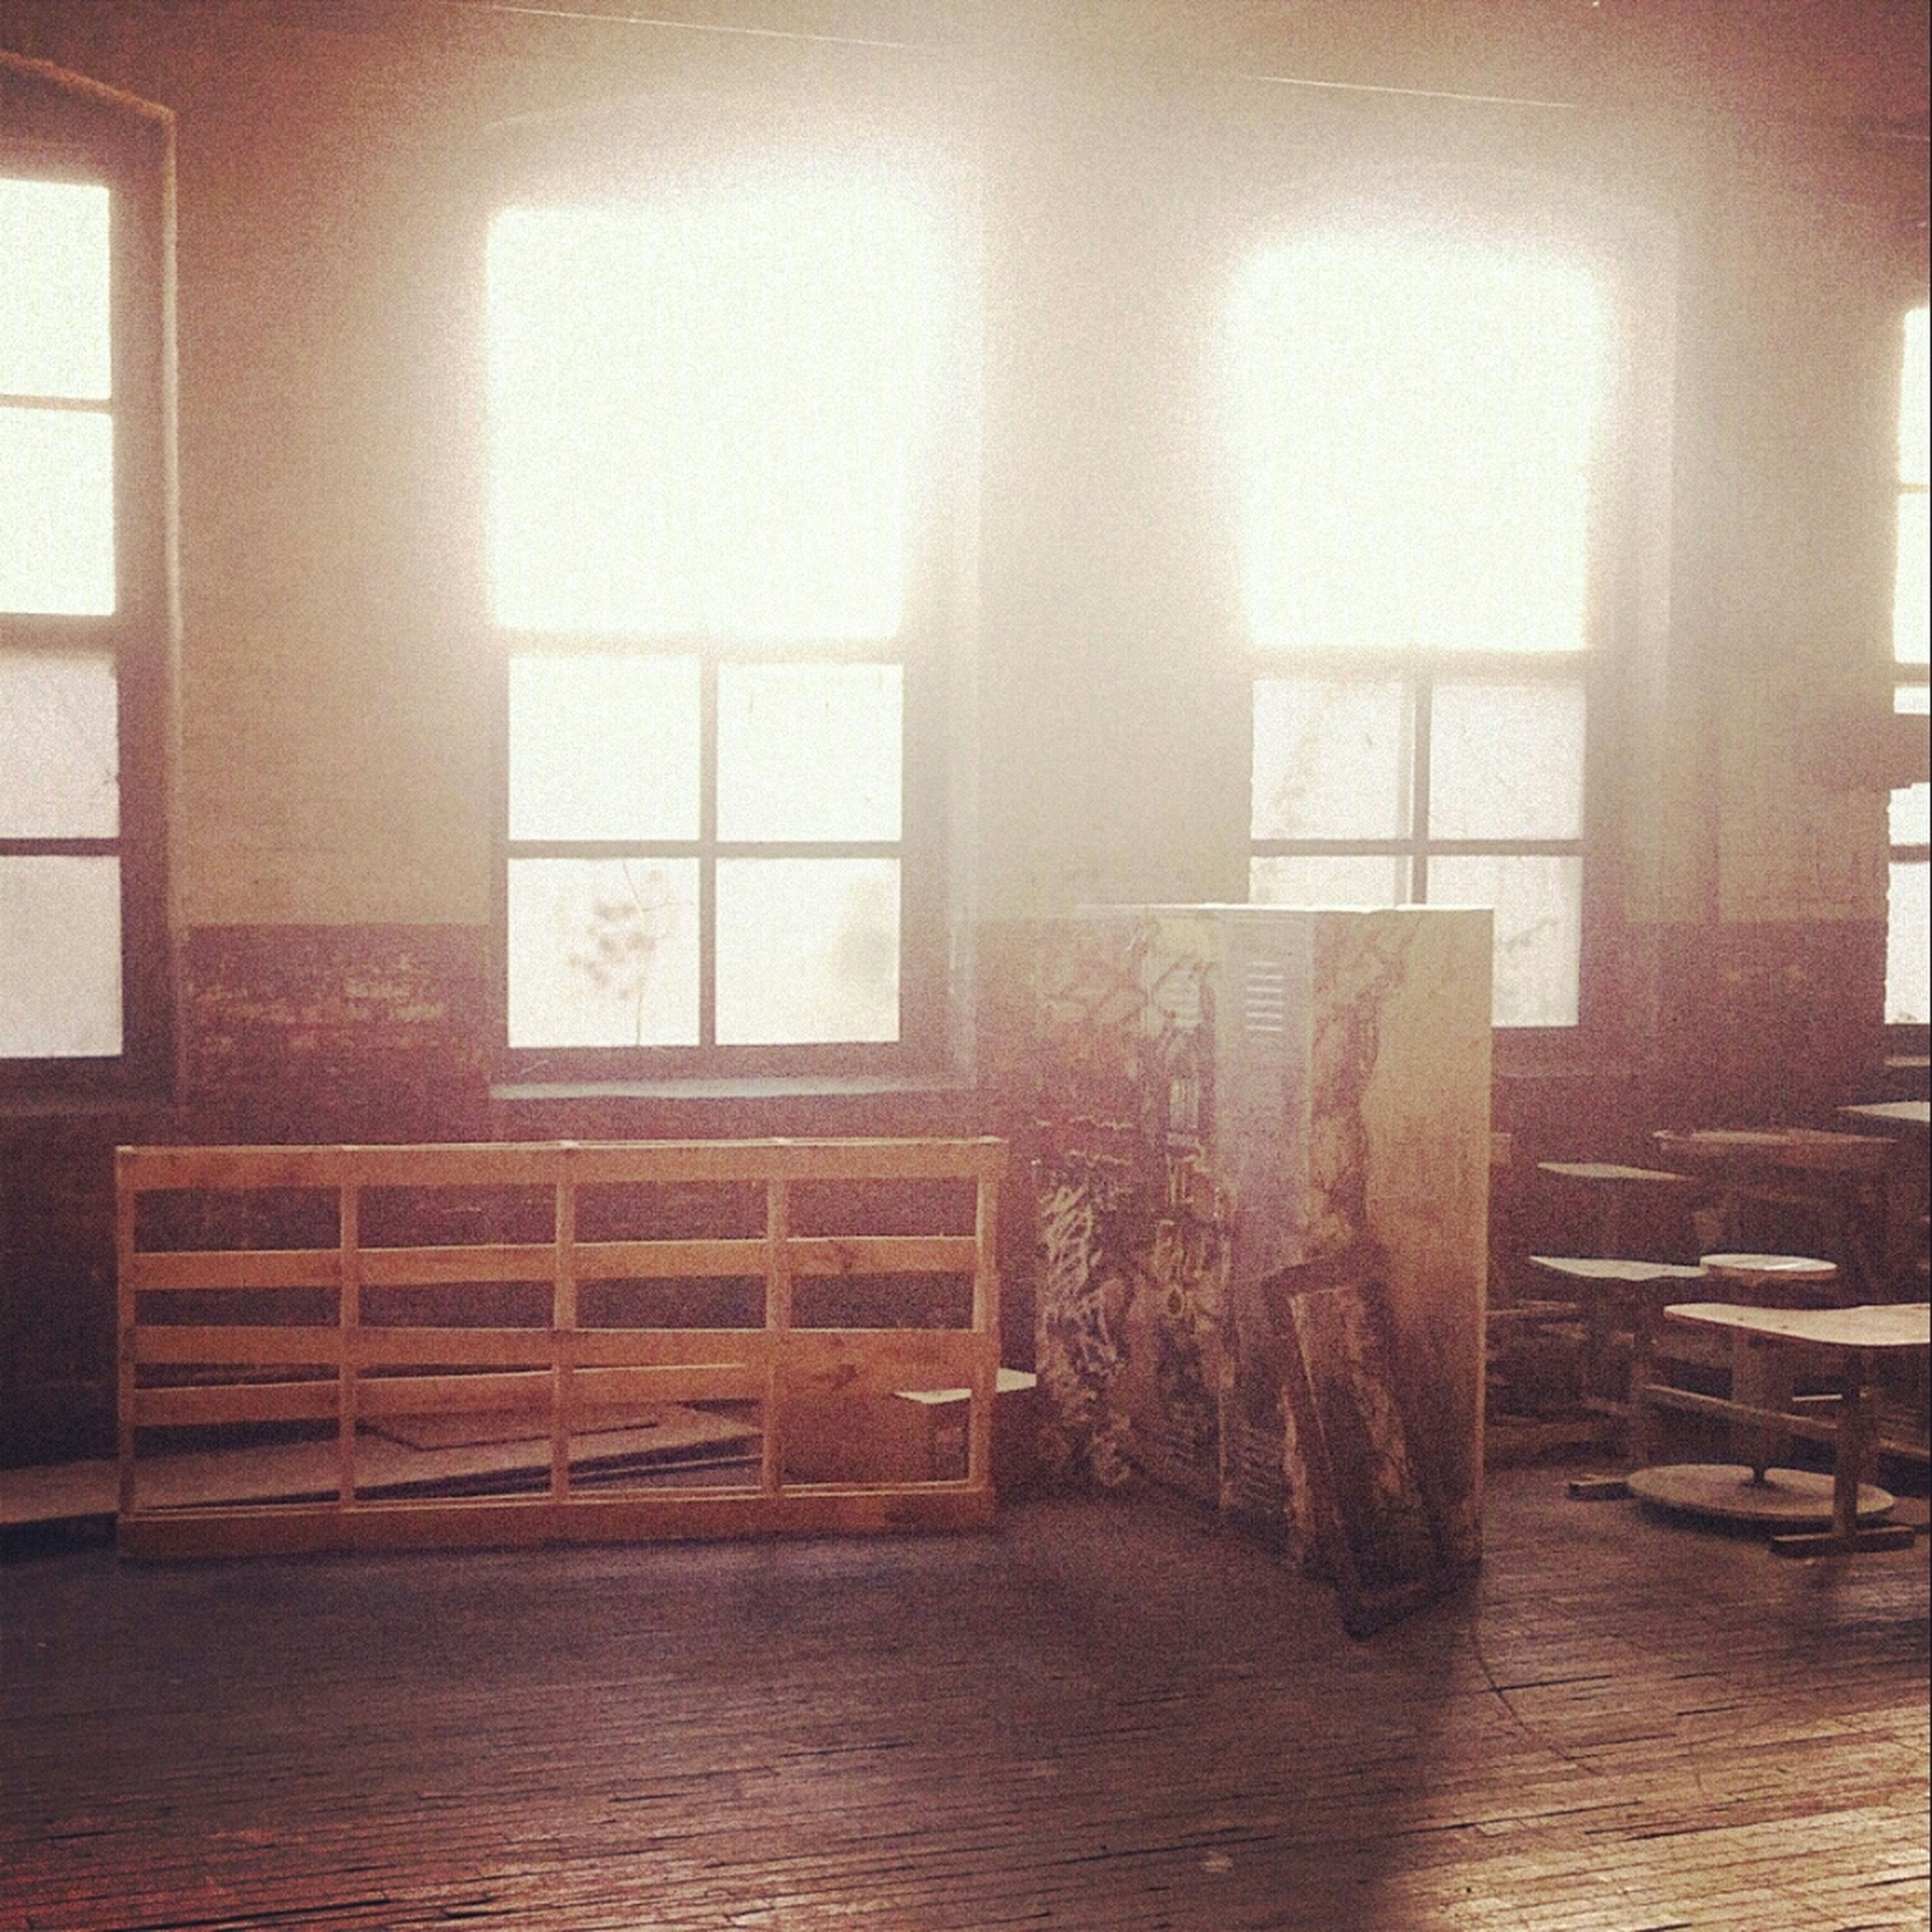 indoors, window, architecture, built structure, empty, glass - material, absence, flooring, day, building exterior, no people, house, abandoned, interior, chair, sunlight, home interior, transparent, door, wall - building feature